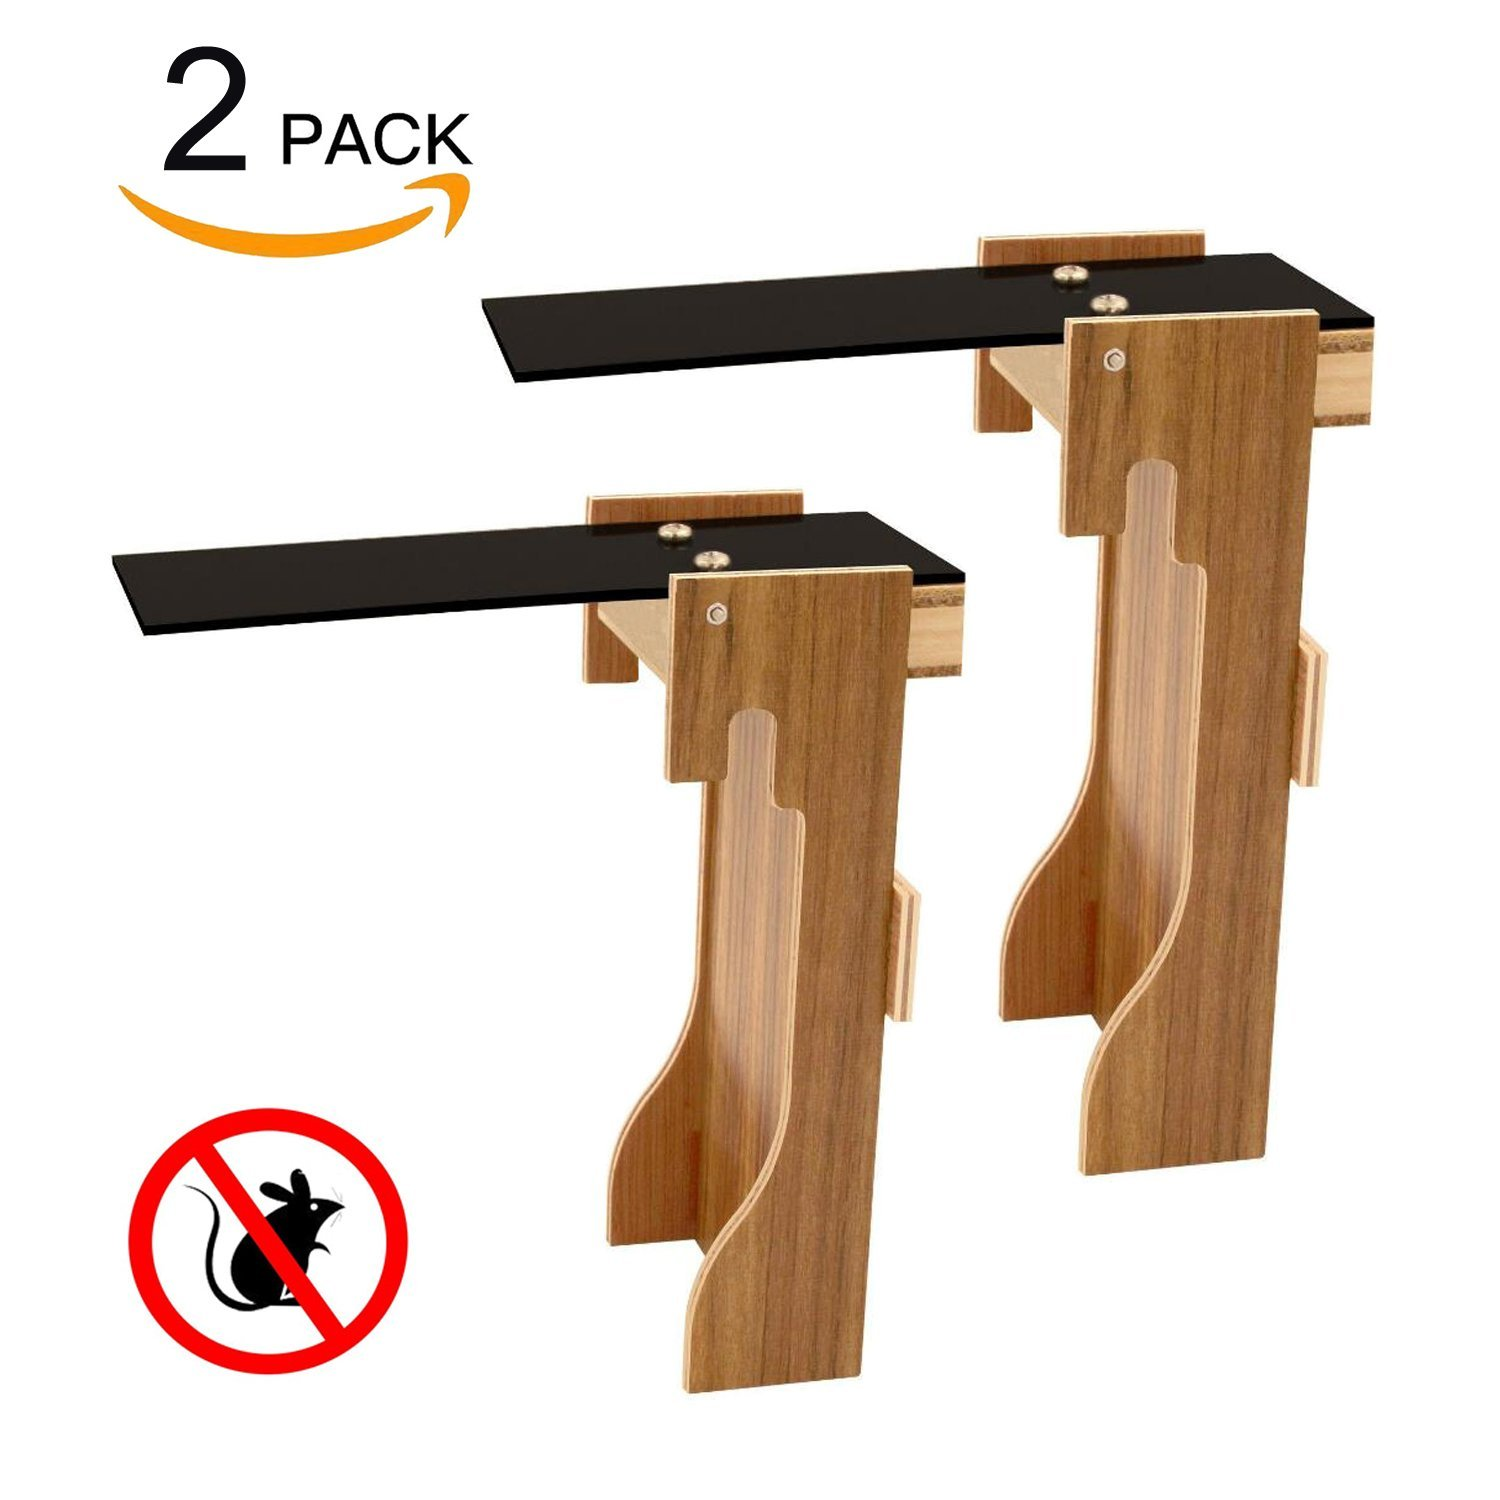 Walk The Plank Mouse Trap - willway Plank Mouse Trap Auto Reset - Humane Bucket Rat Trap - No Drilling Required - Kill Or Live Catch Mice & Other Pests & Rodents - 2 Packs yutuo